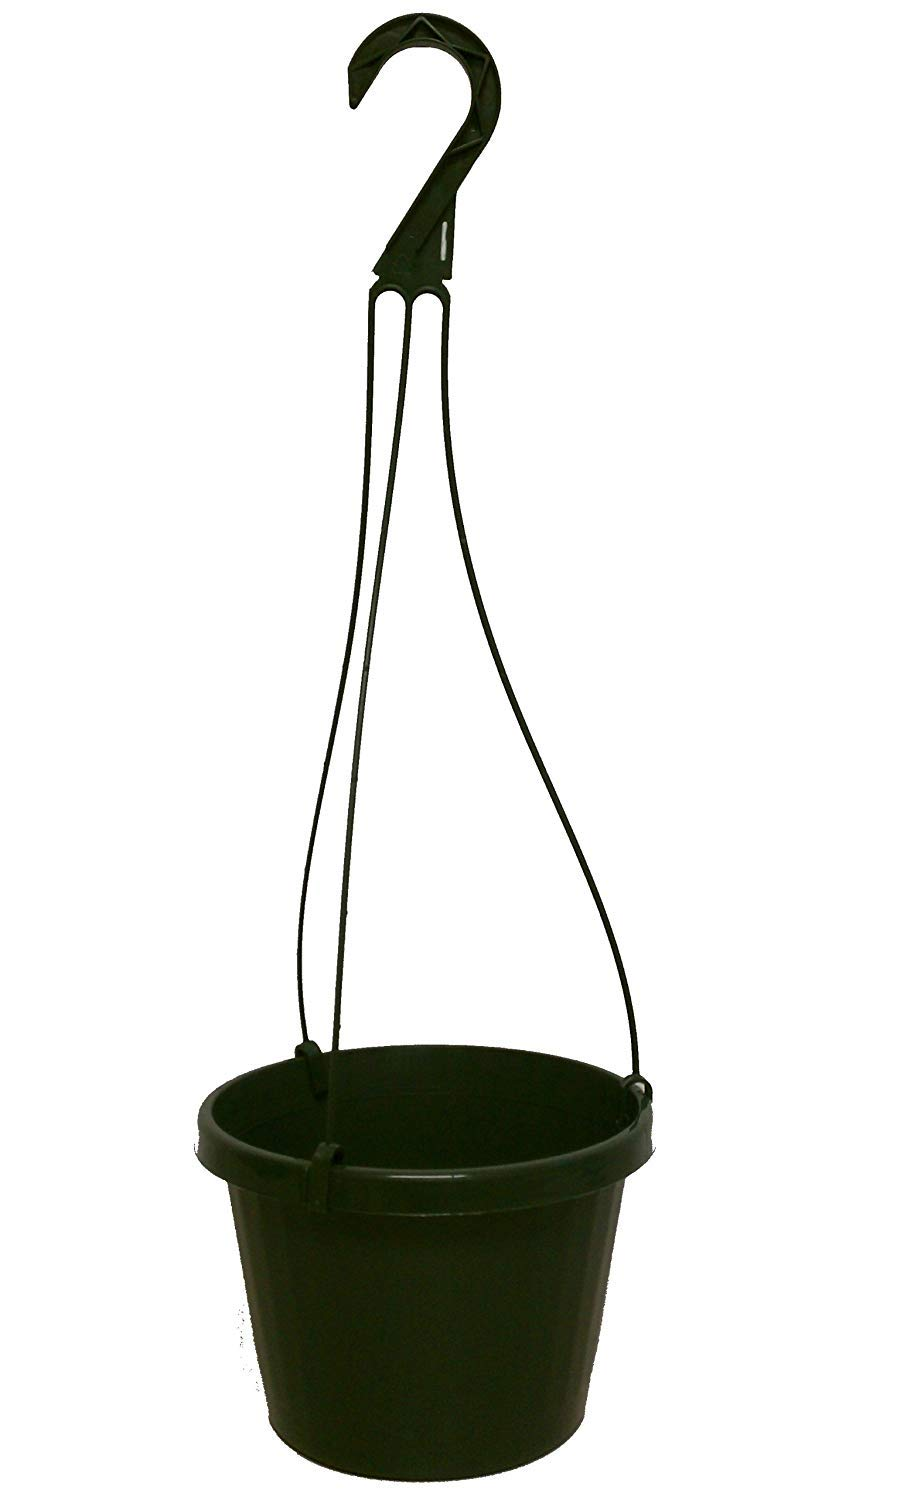 10 New ~ 10 Inch Hanging Basket Plastic Nursery Pots ~ Green ~ Pots are 9 Inch Round at The Top and 6.2 Inch Deep and Includes Internal Dish.